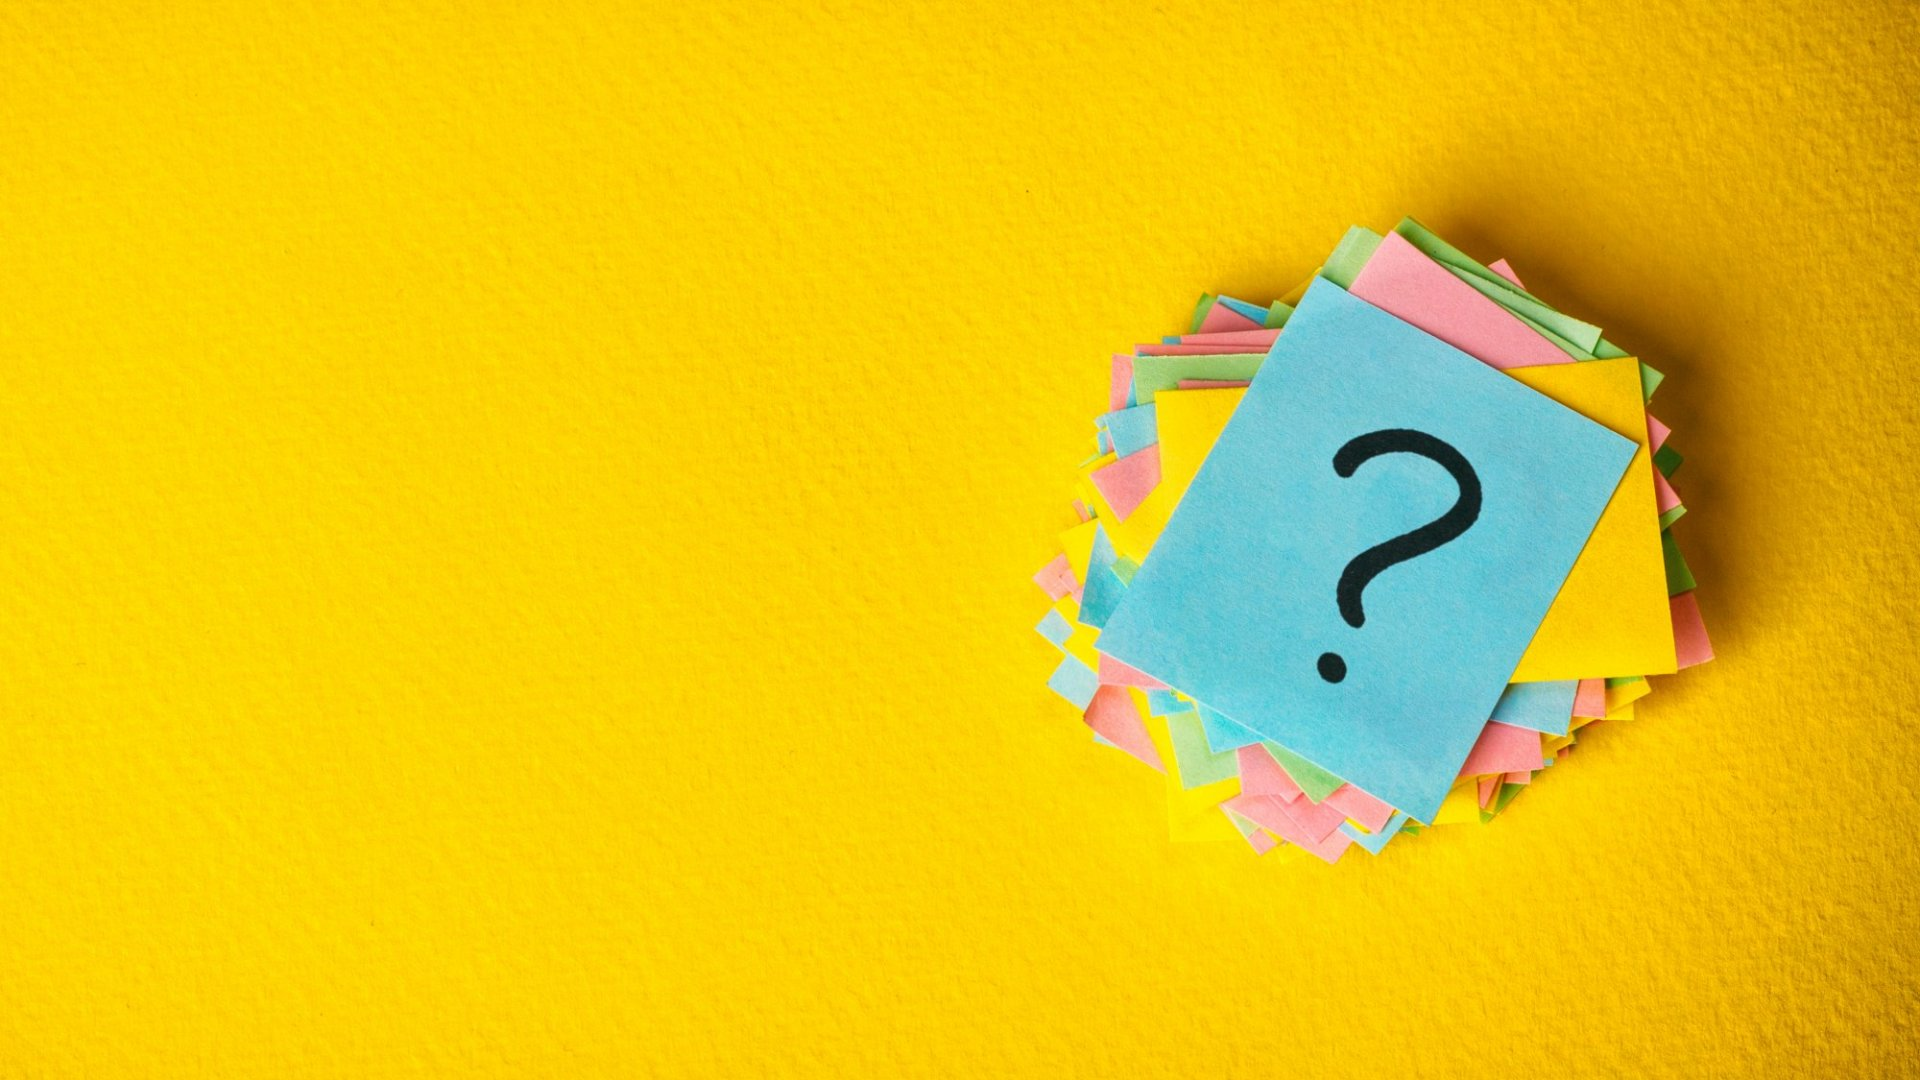 This Is the Single Most Important Question to Ask Before Promoting or Hiring a Leader